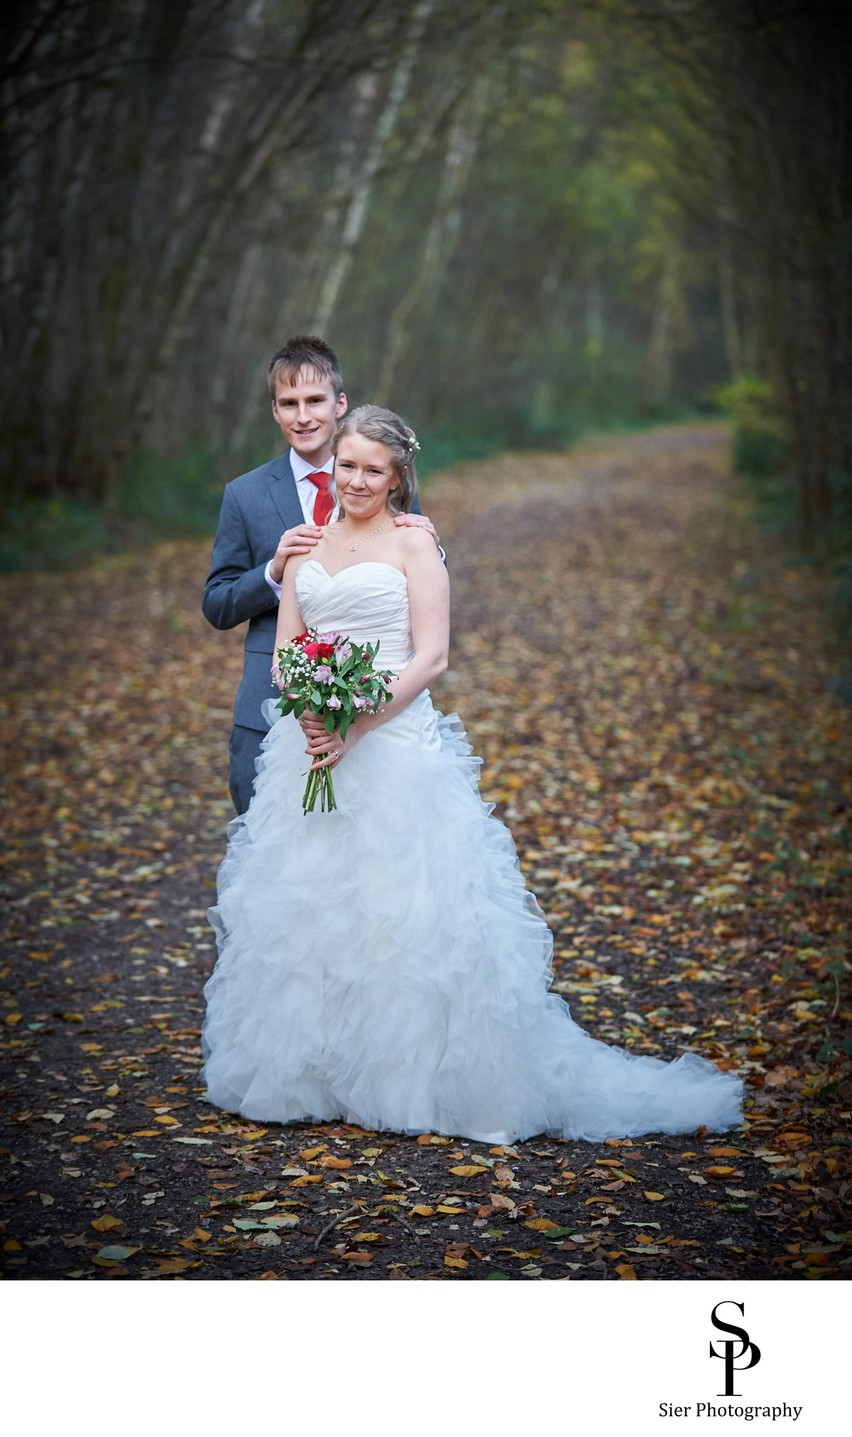 Wedding Photographs at Mosborough Hall Hotel